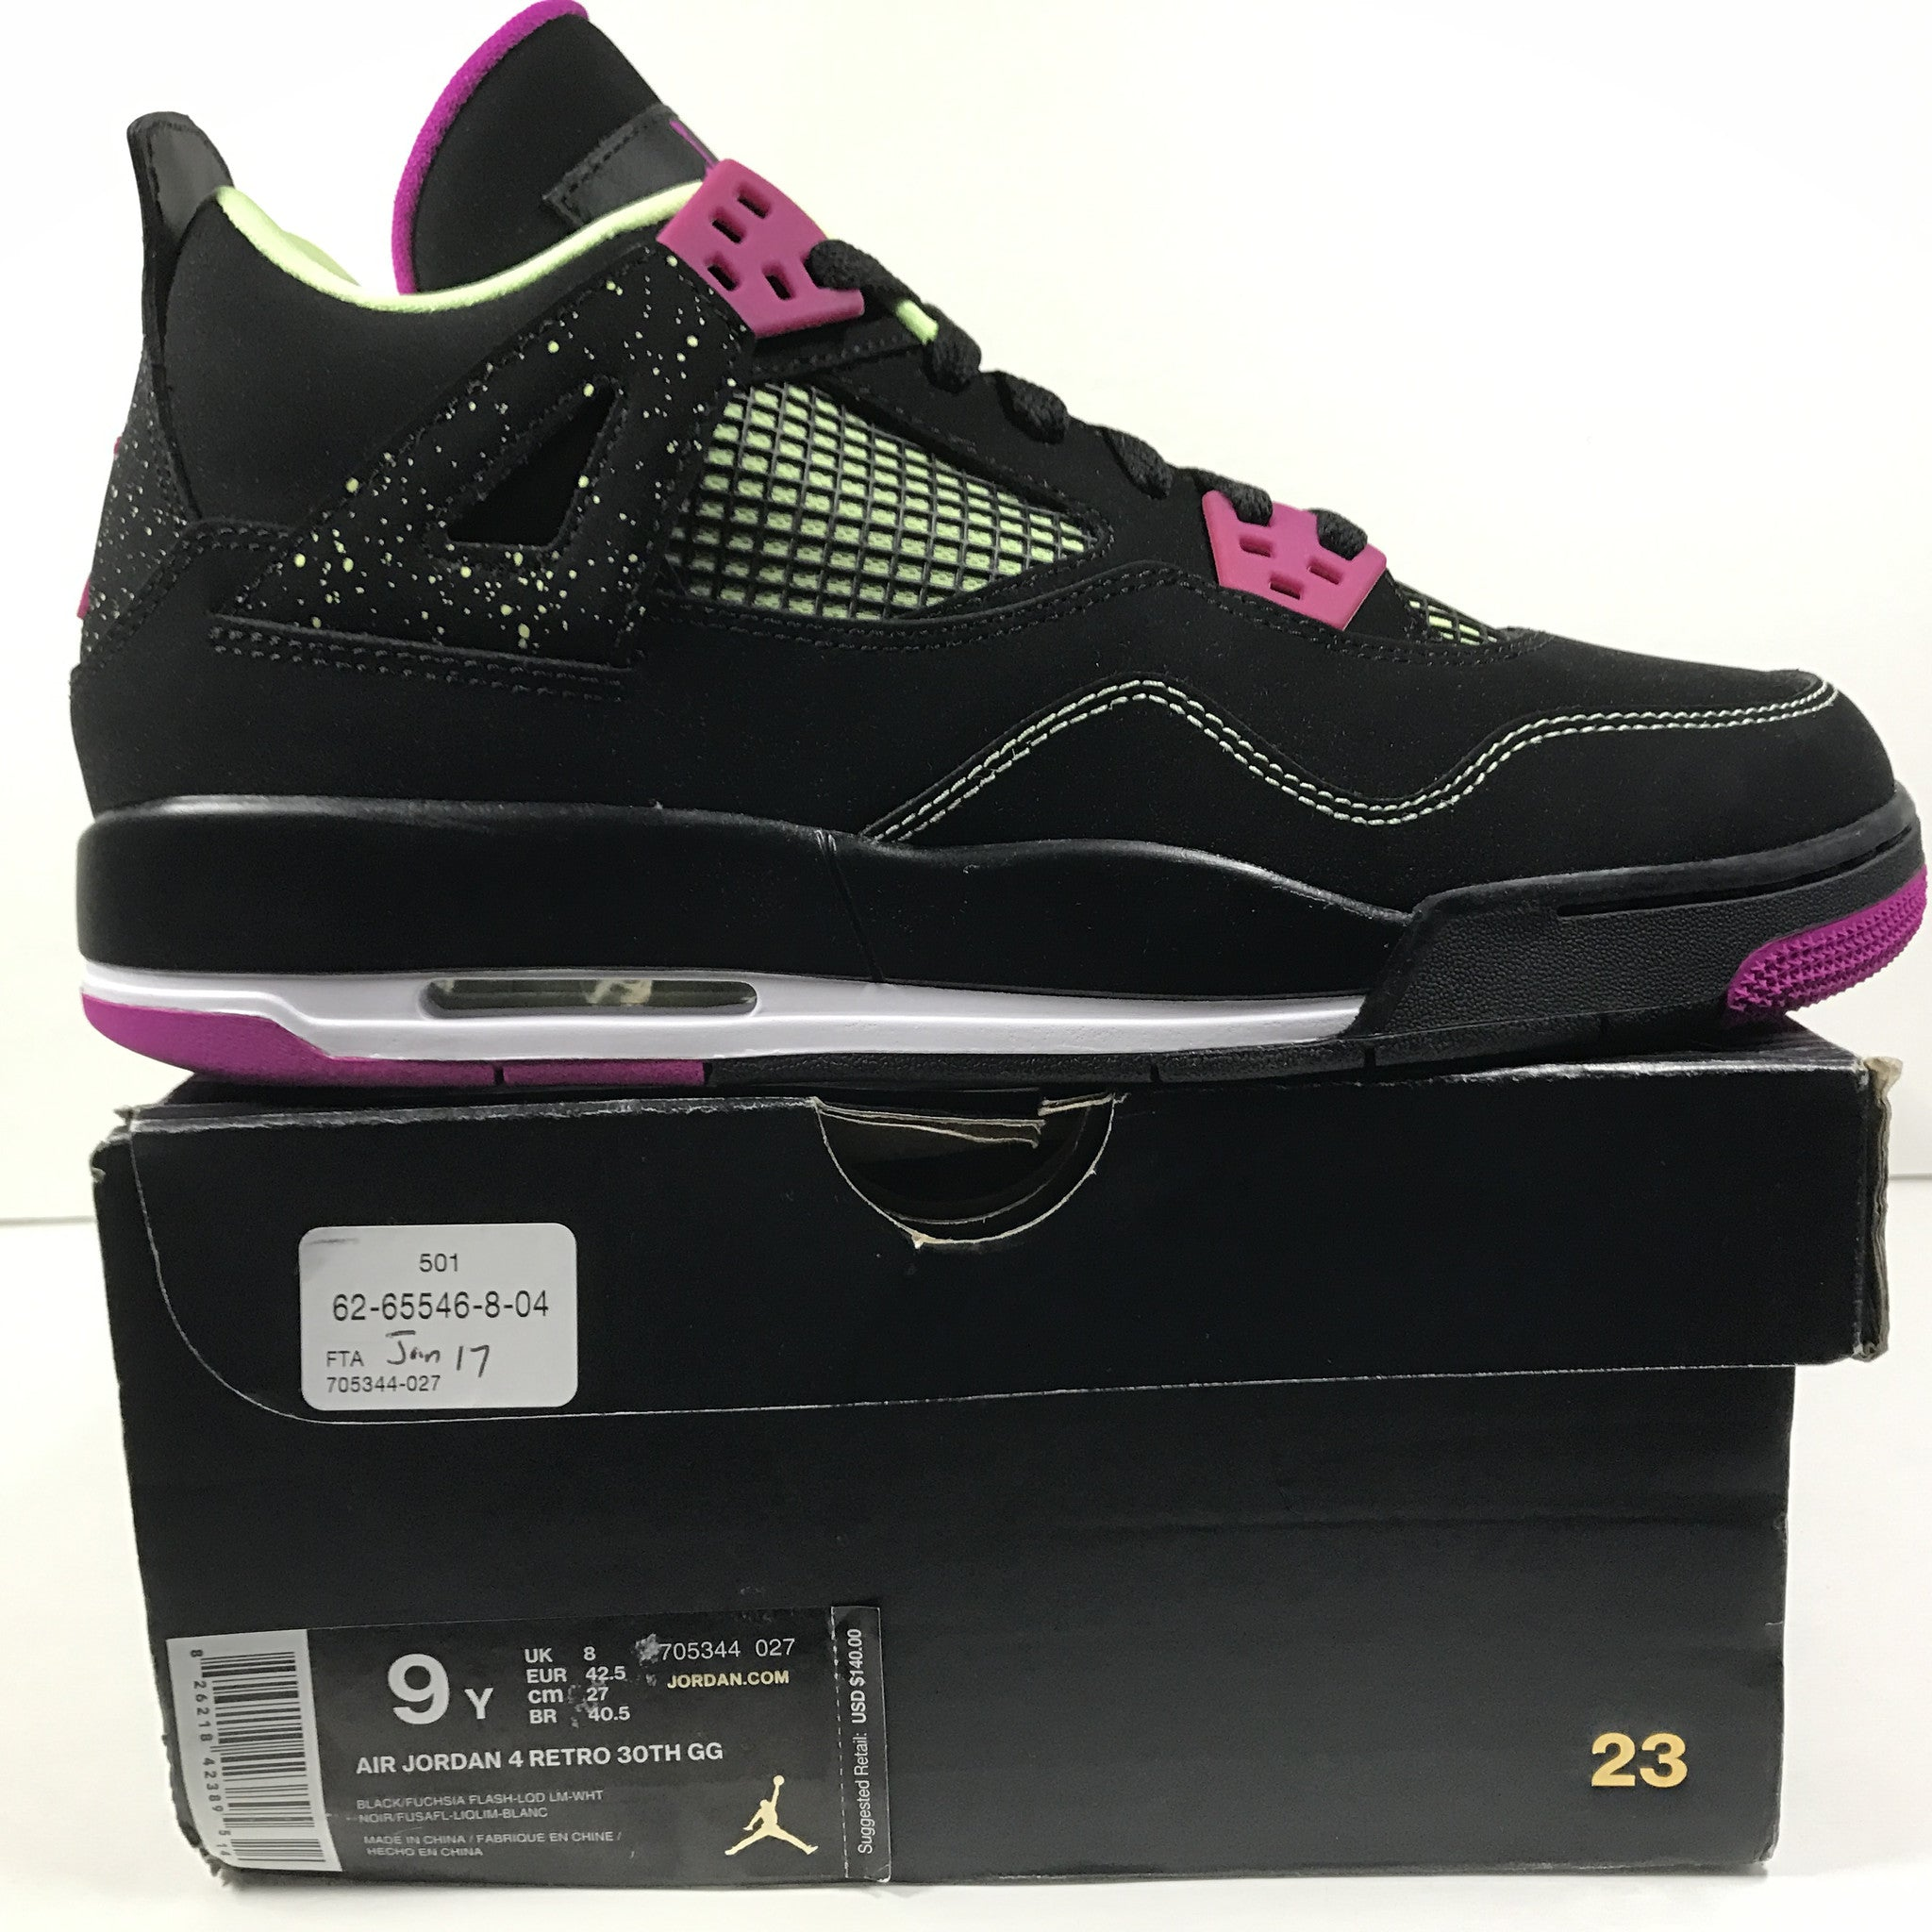 DS Nike Air Jordan 4 IV Retro 30th GG Black/Fuchscia Size 9Y - DOPEFOOT  - 2